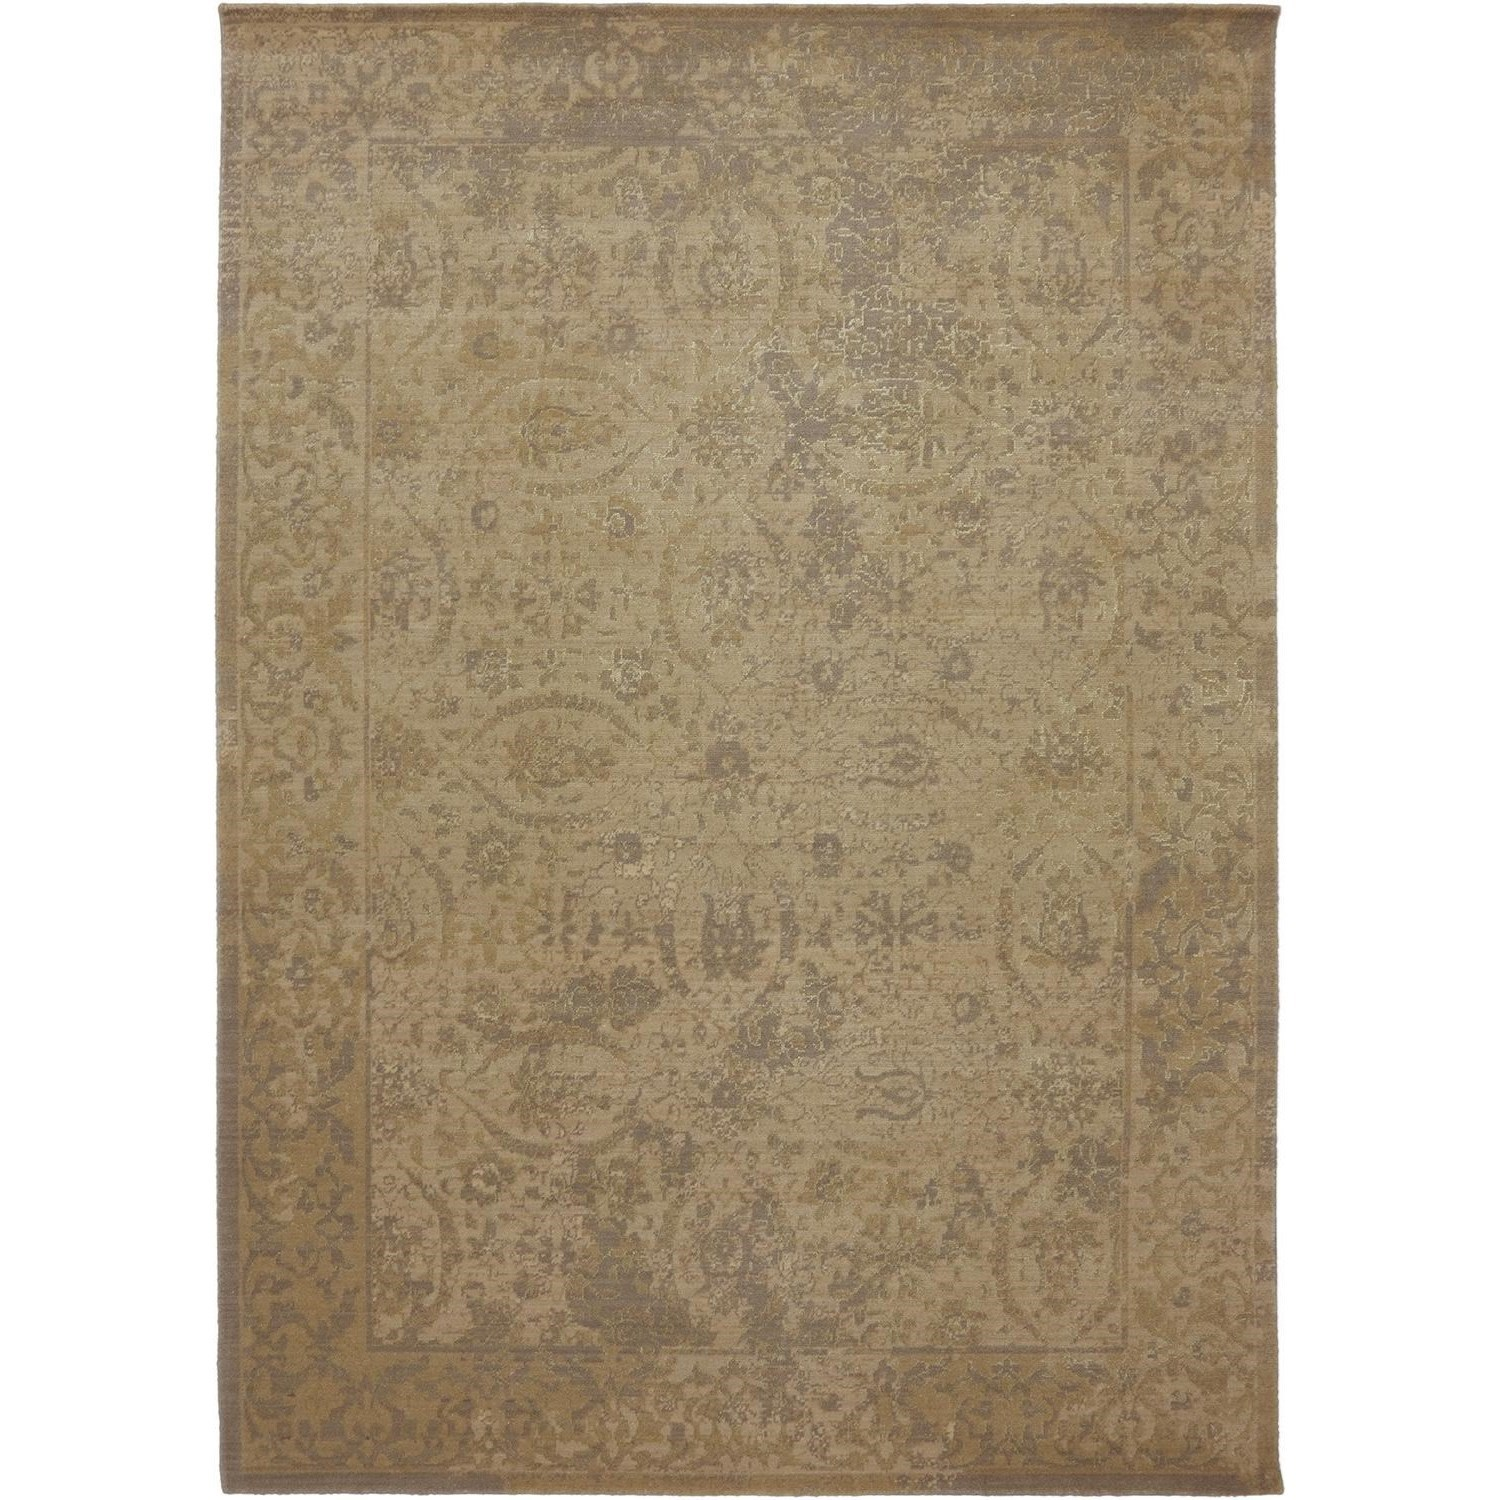 Karastan Rugs Evanescent 9'9x12'8 Terni Light Rug - Item Number: RG818 443 117152